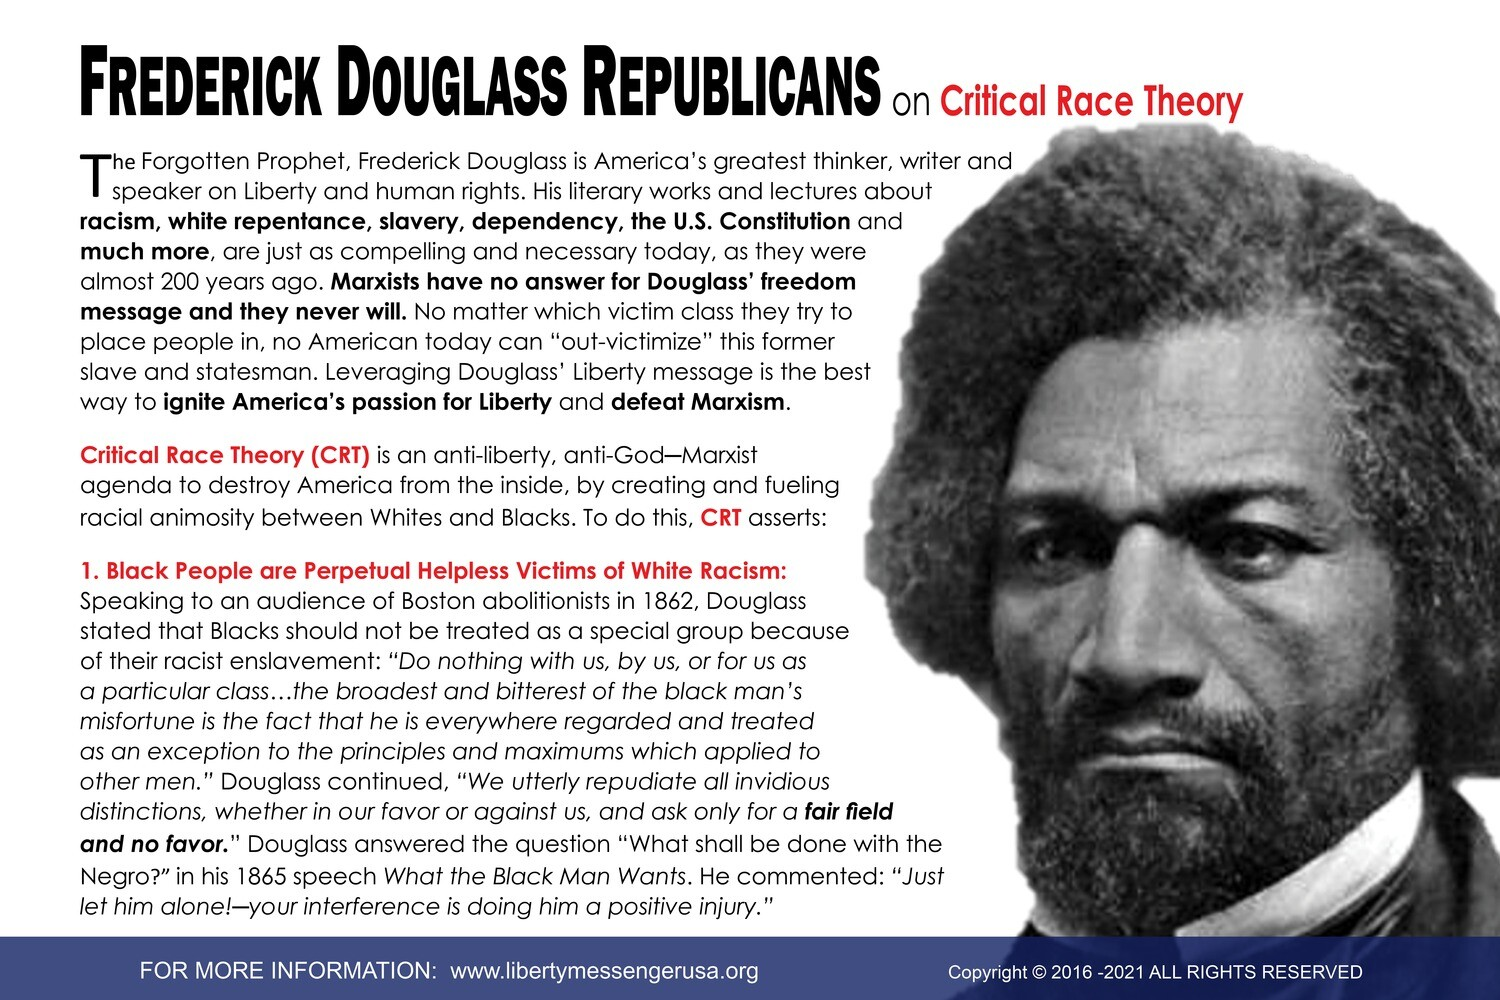 Engagement Card: Frederick Douglass on Critical Race Theory